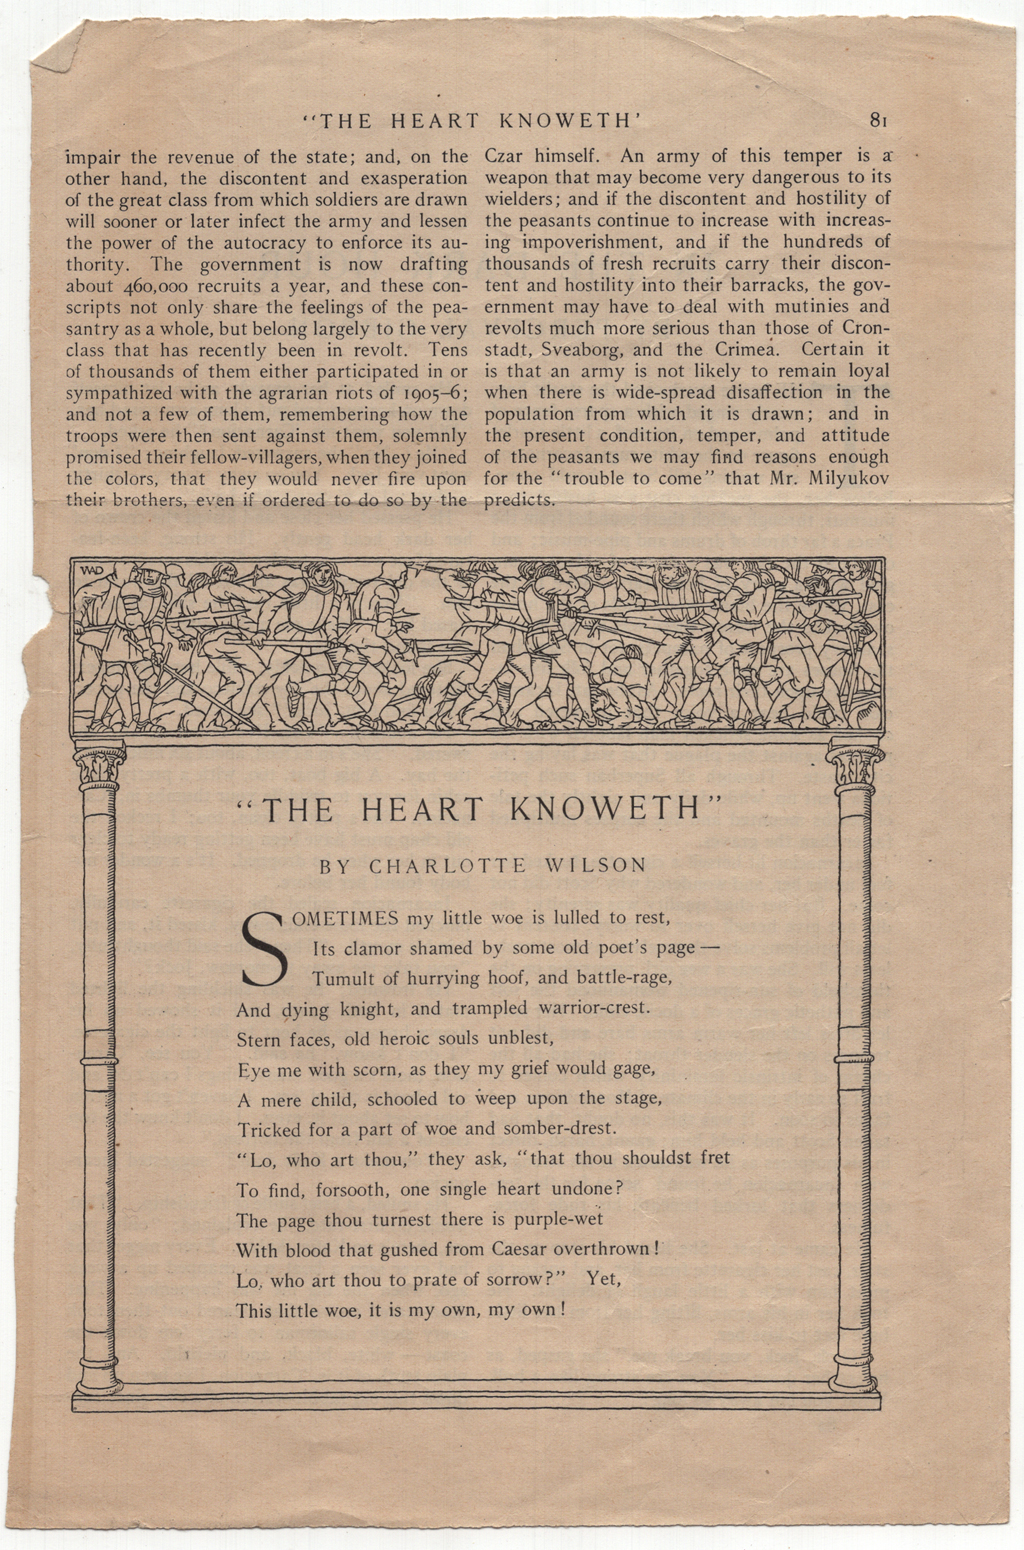 """The Heart Knoweth"" by Charlotte Wilson (McClure's Magazine June 1908, p. 81). Illustration and frame by W.A. Dwiggins."